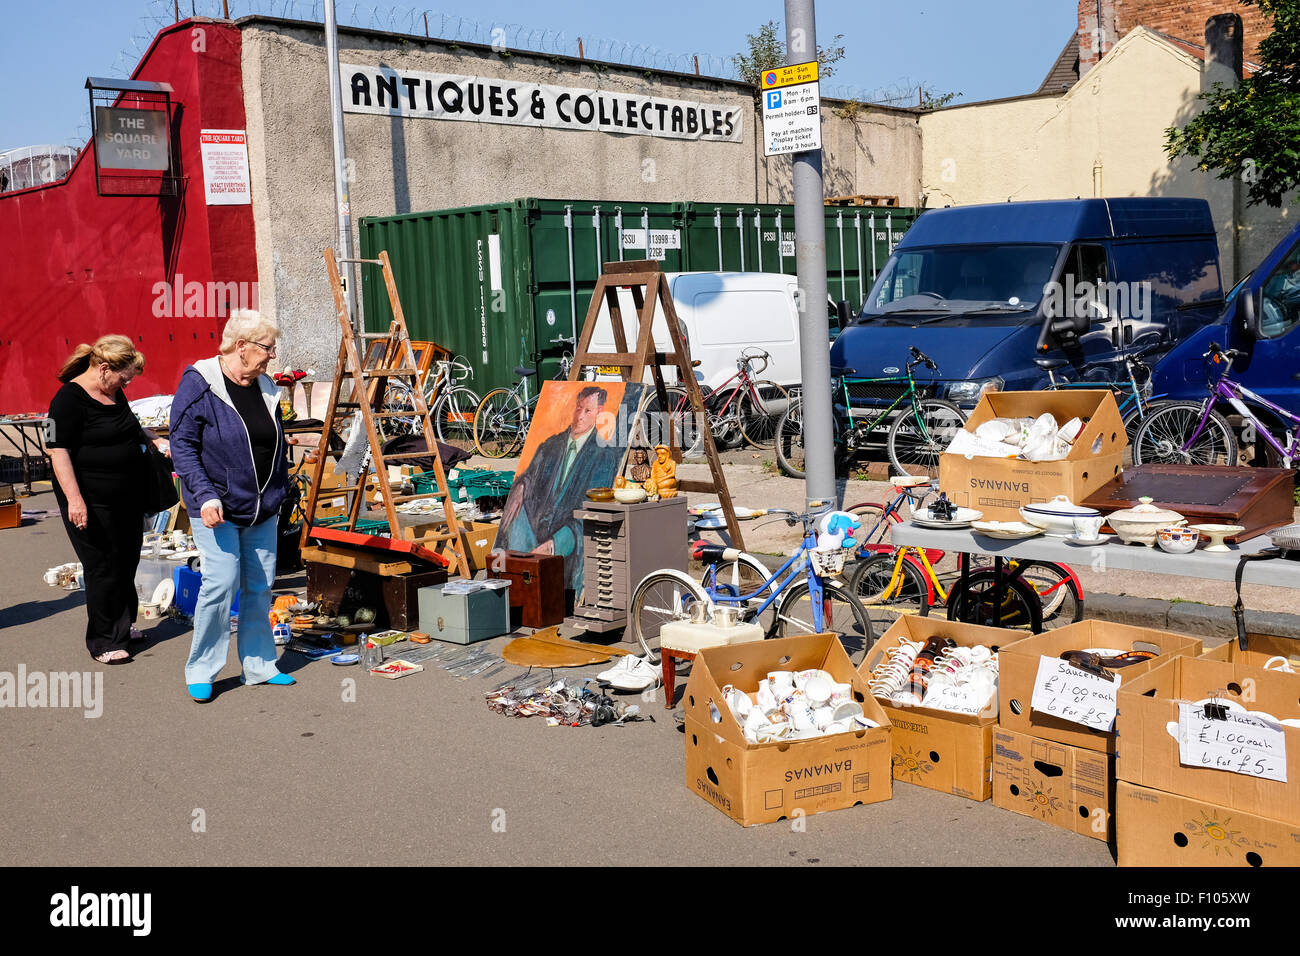 Bric a brac for sale and displayed on the street at The Barras, Glasgow's famous street market, Scotland, UK - Stock Image